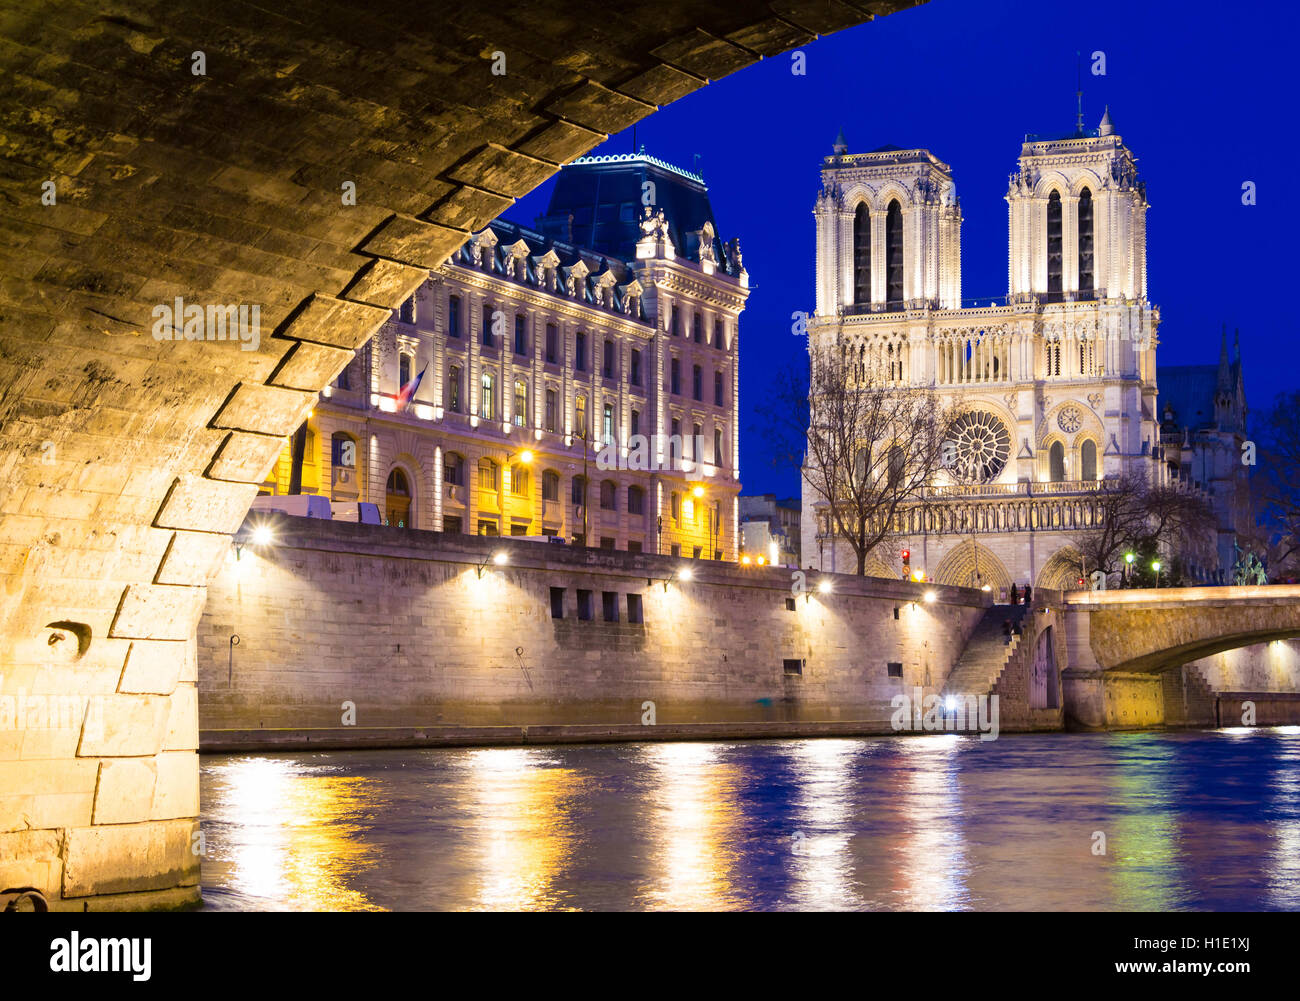 Le catholique de Notre Dame, Paris, France. Photo Stock